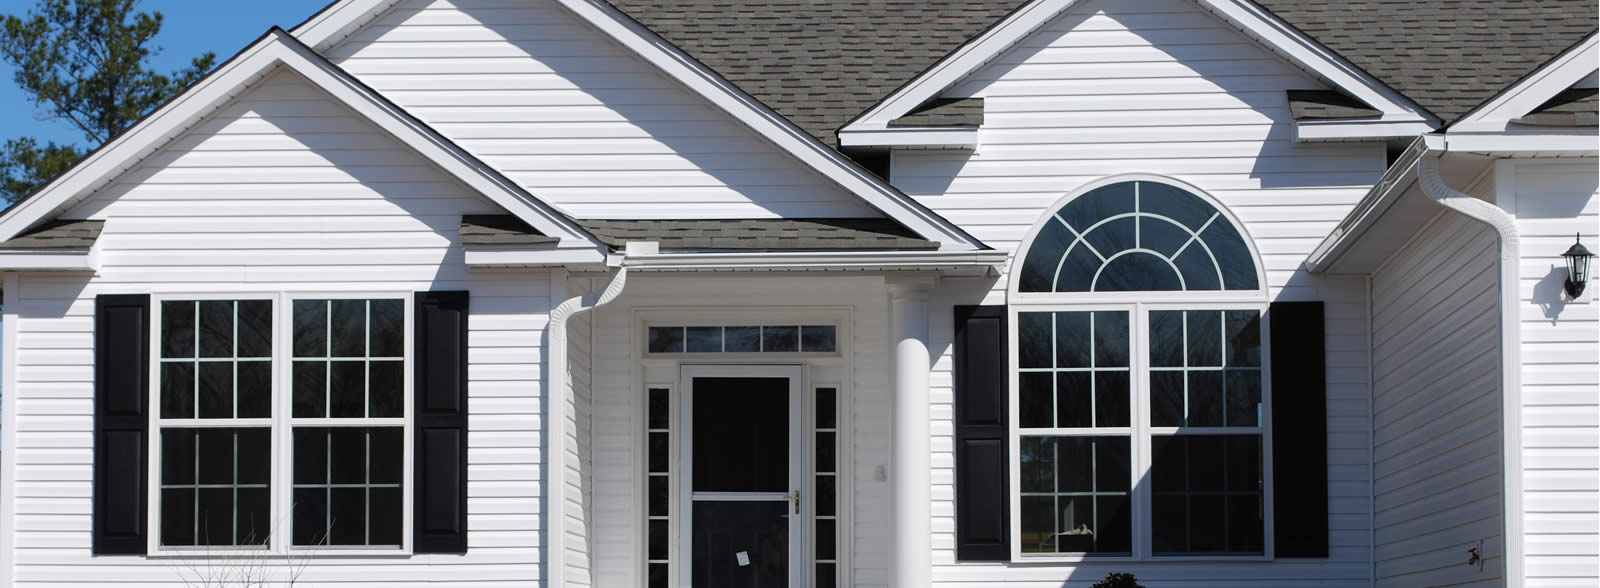 Vinyl Siding Repair Atlanta Ga Contractors